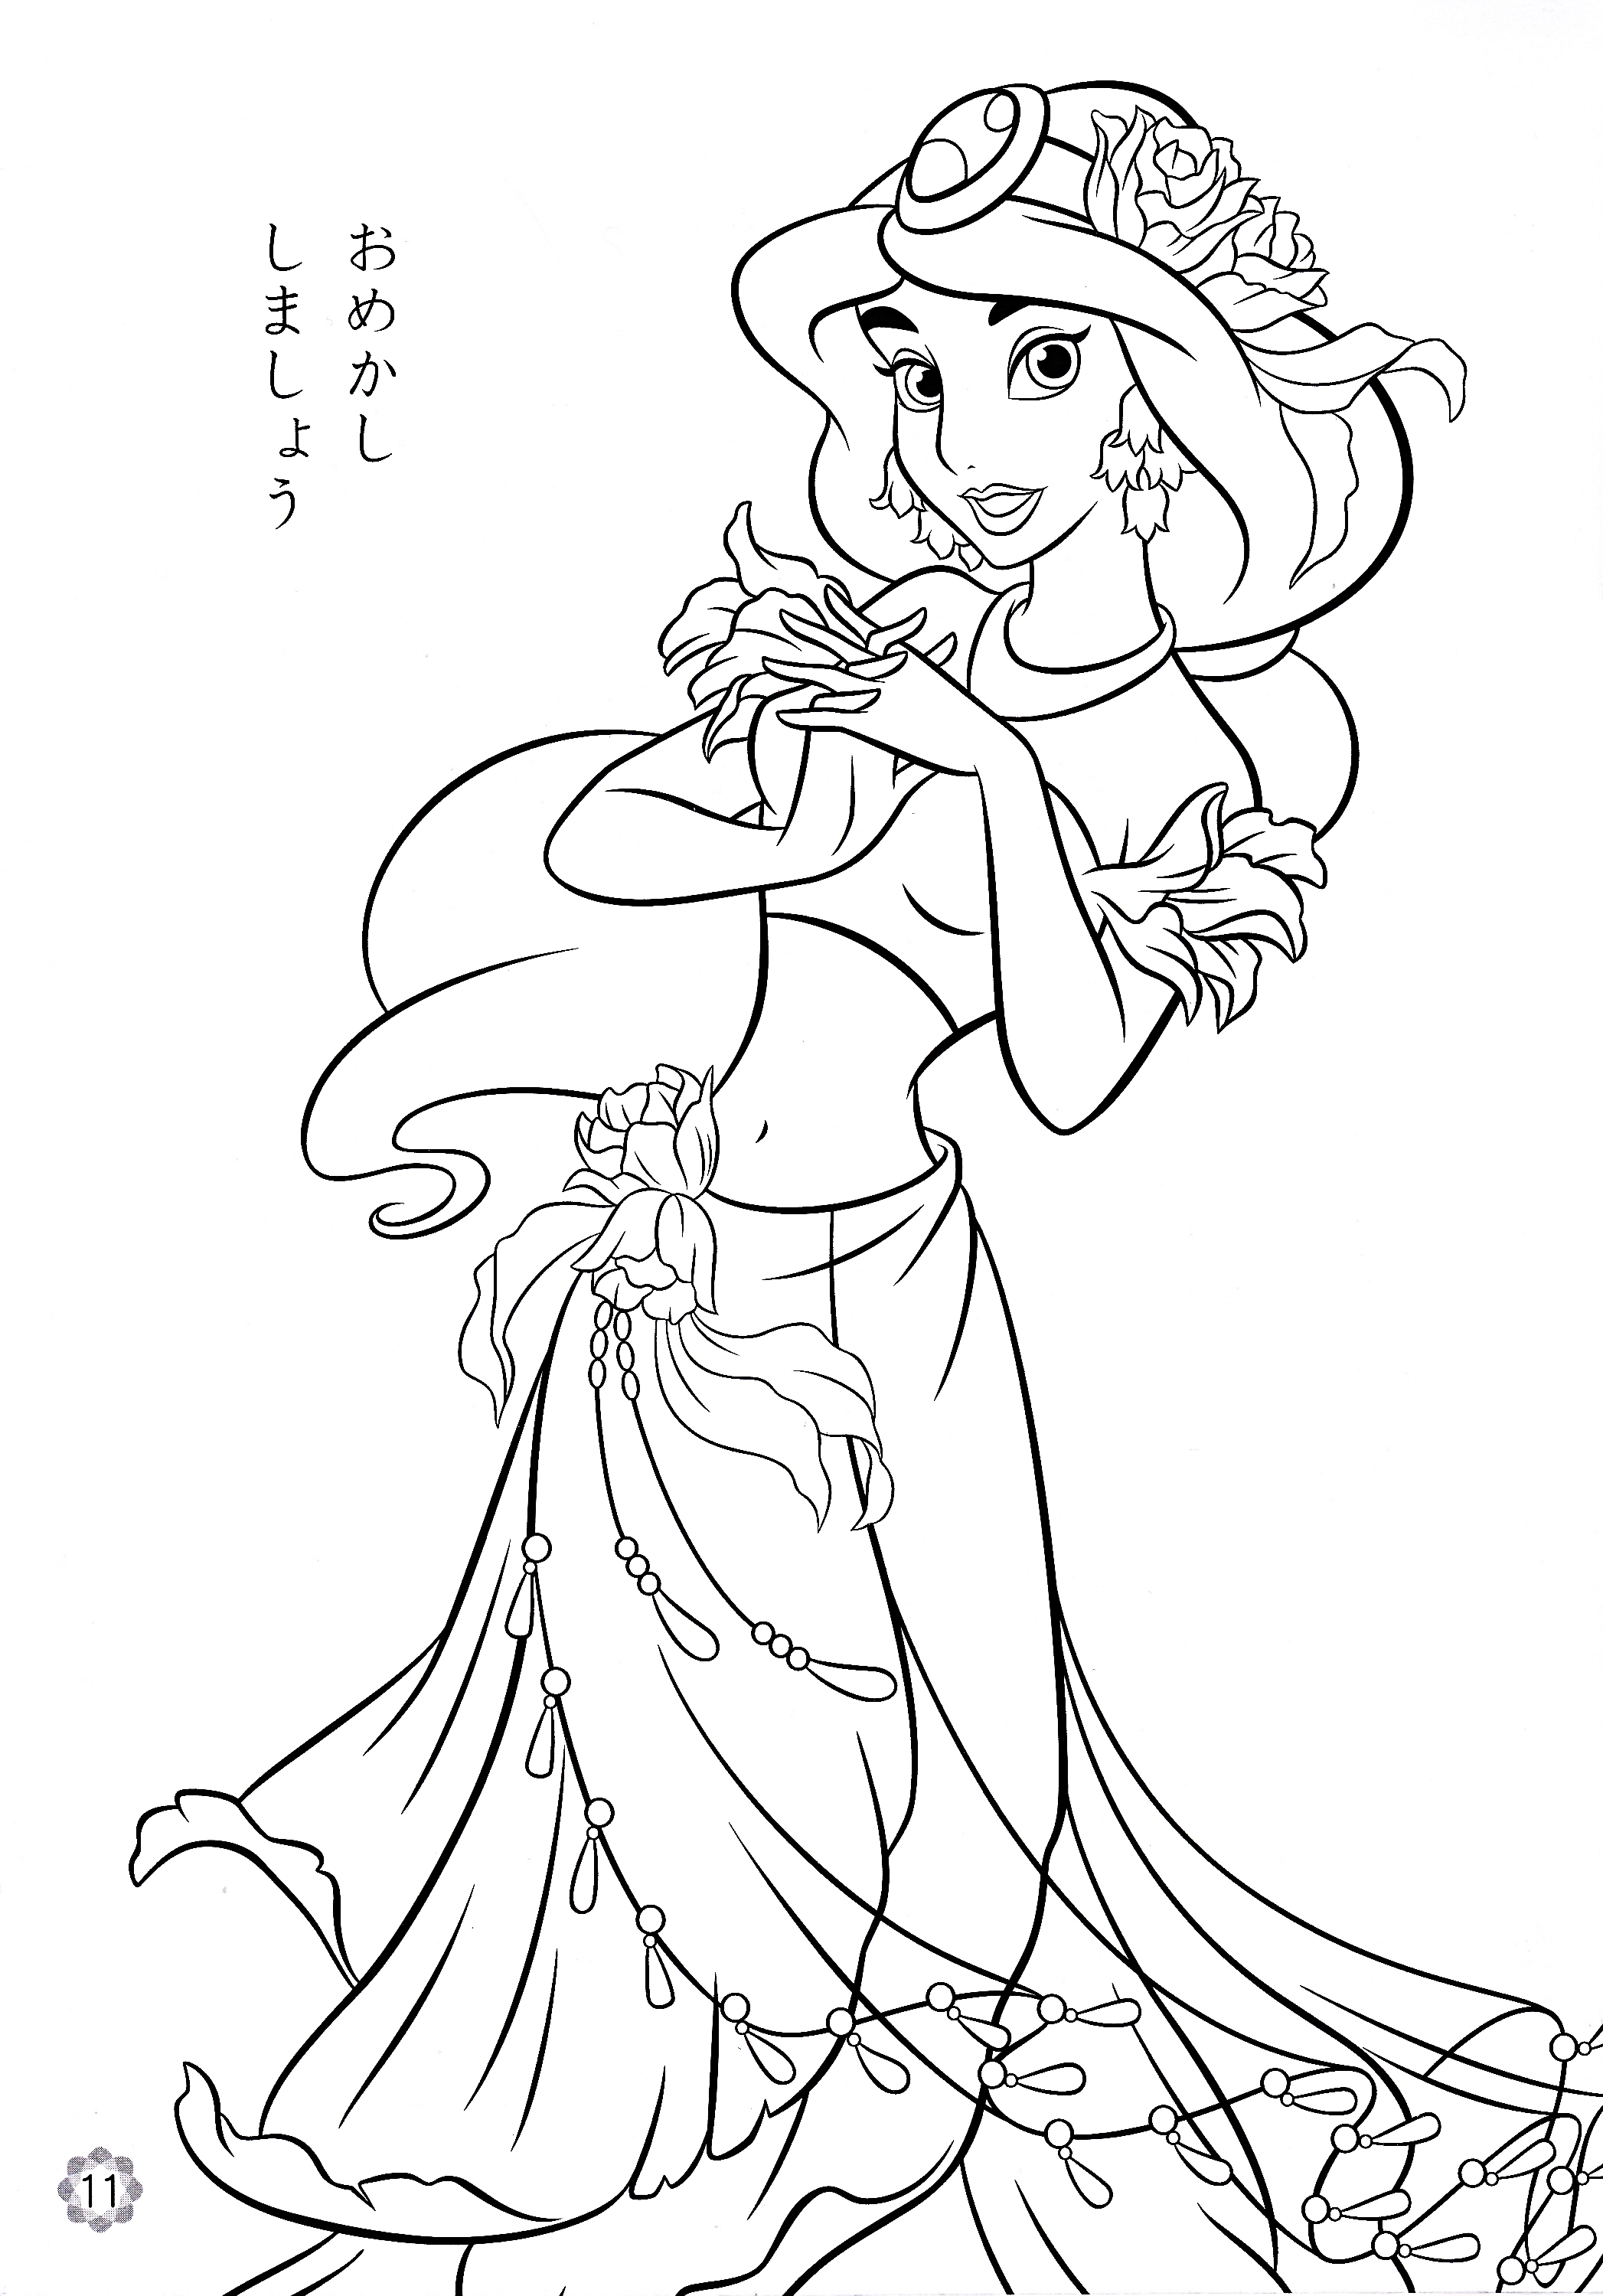 Disney Princess Coloring Pages - Princess hasmin